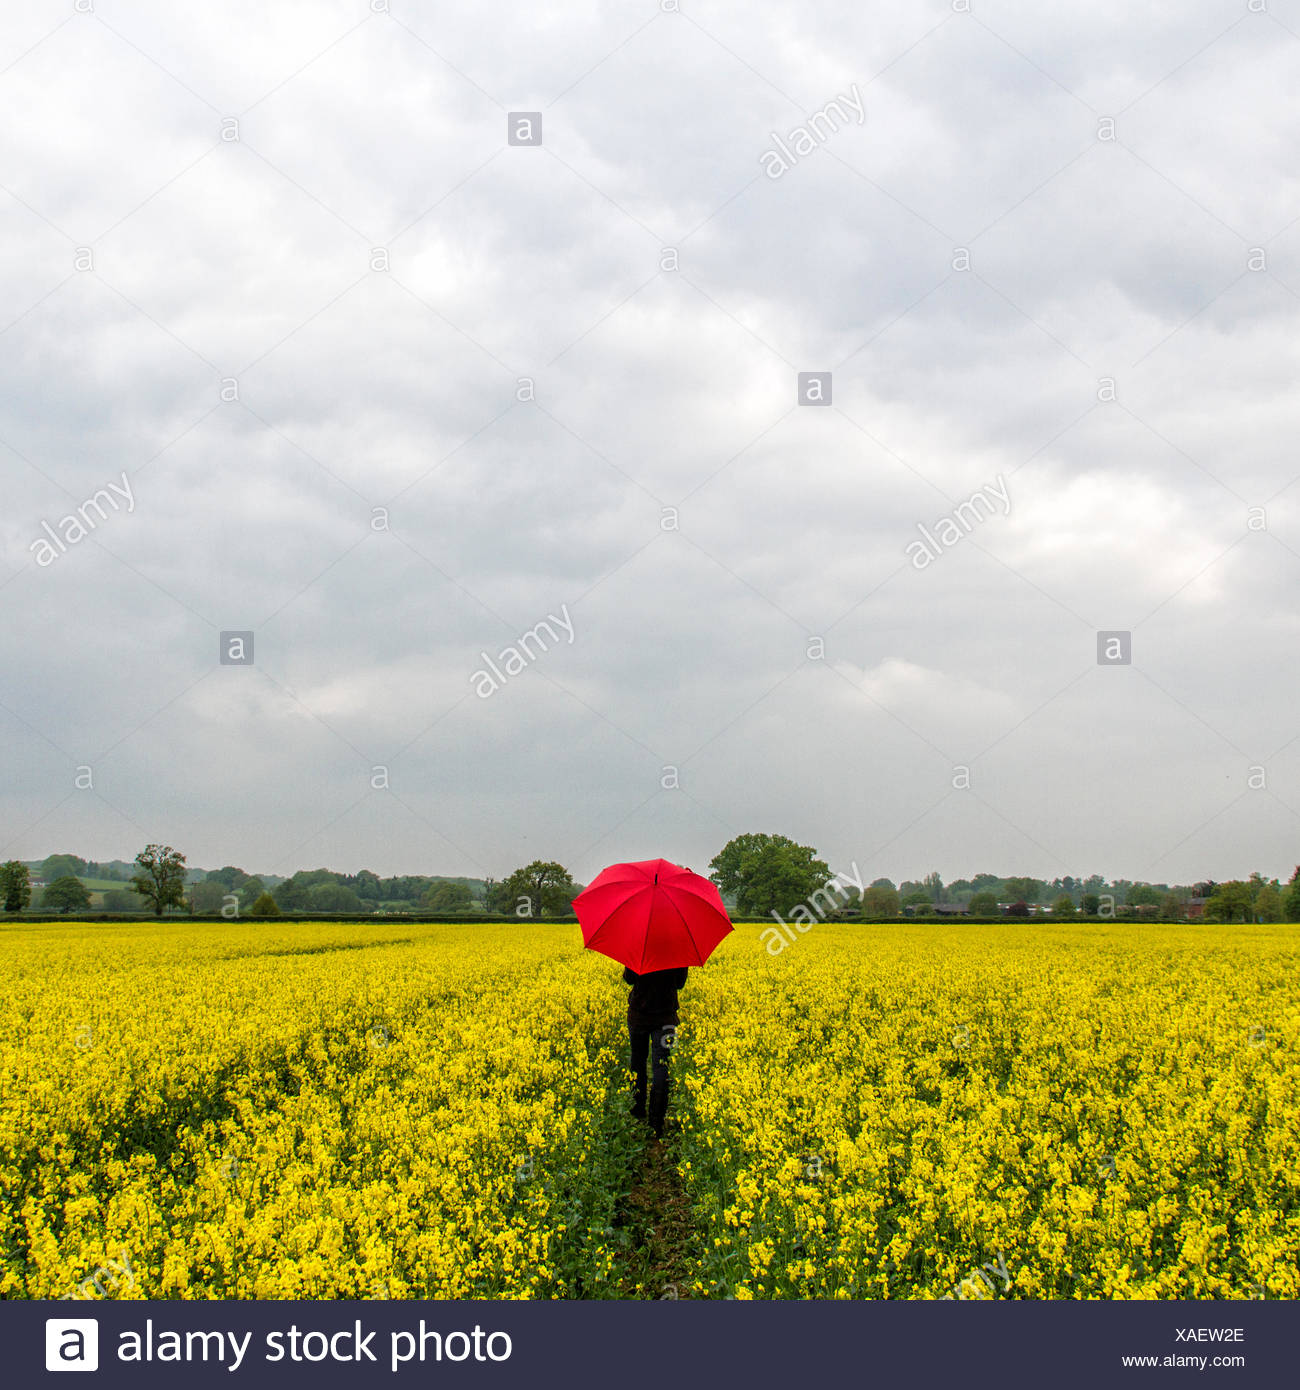 Woman standing with red umbrella in middle of field - Stock Image